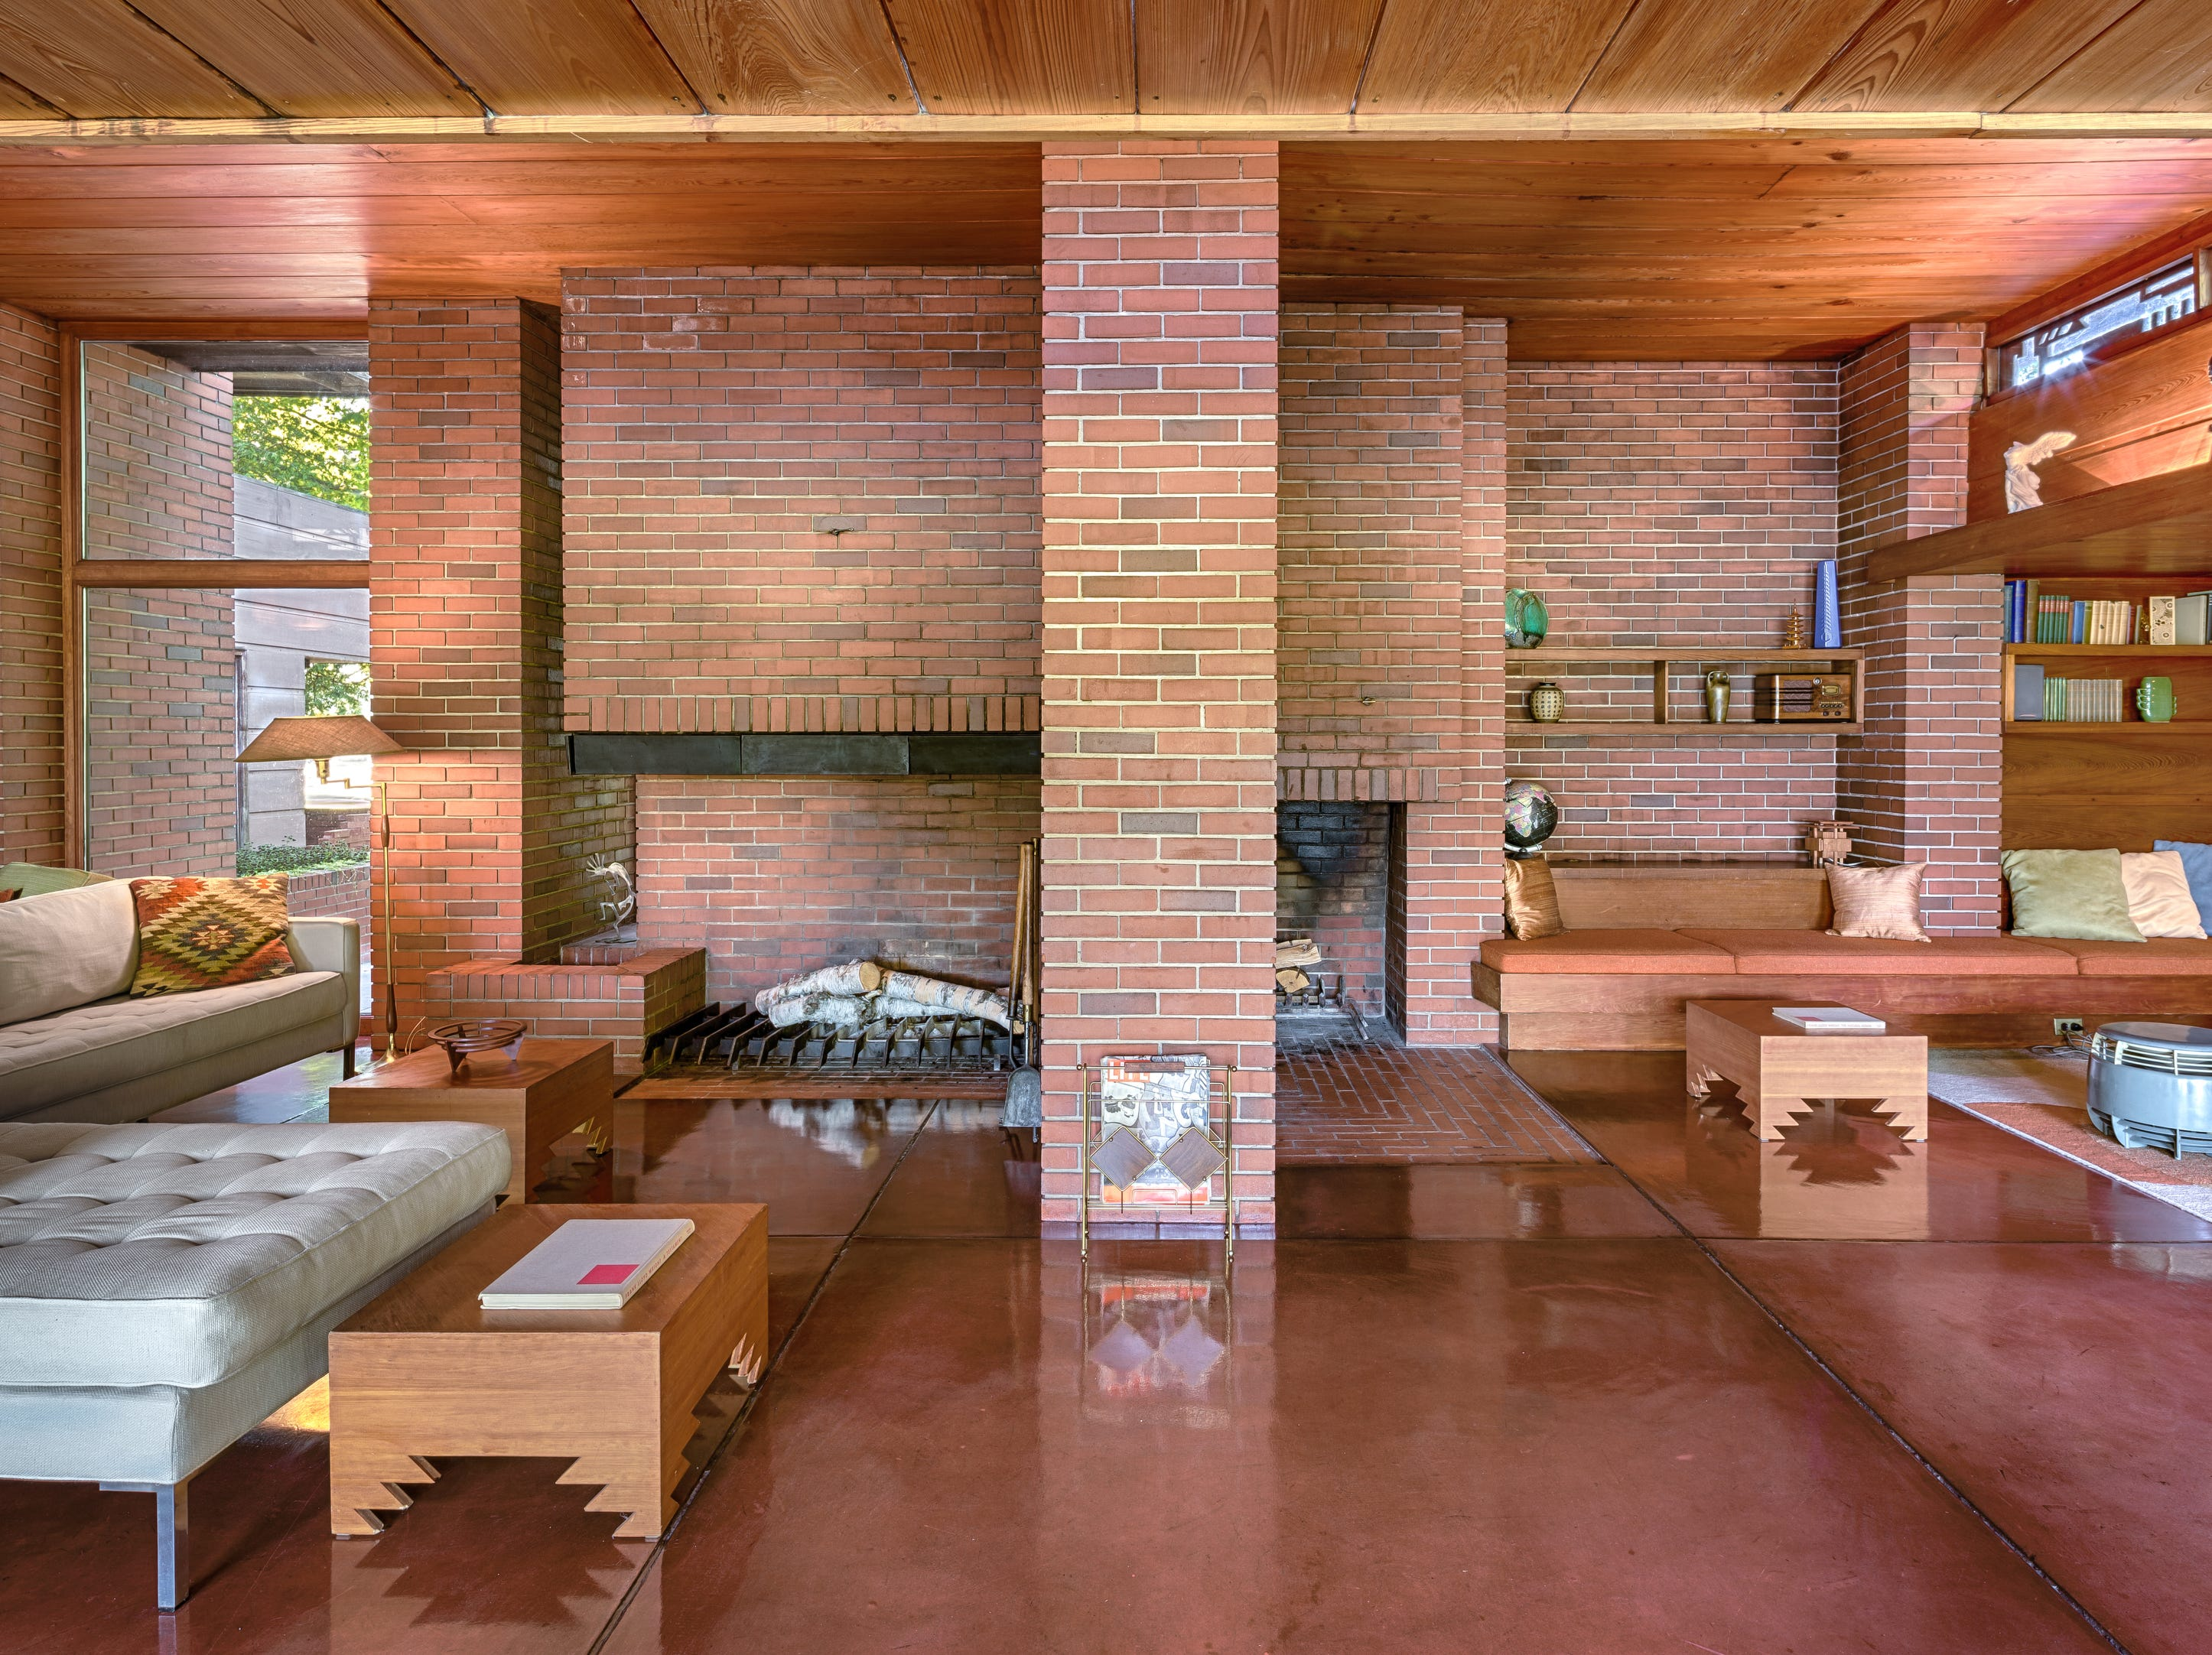 Still Bend, also known as Frank Lloyd Wright's Bernard Schwartz House, is located in Two Rivers.